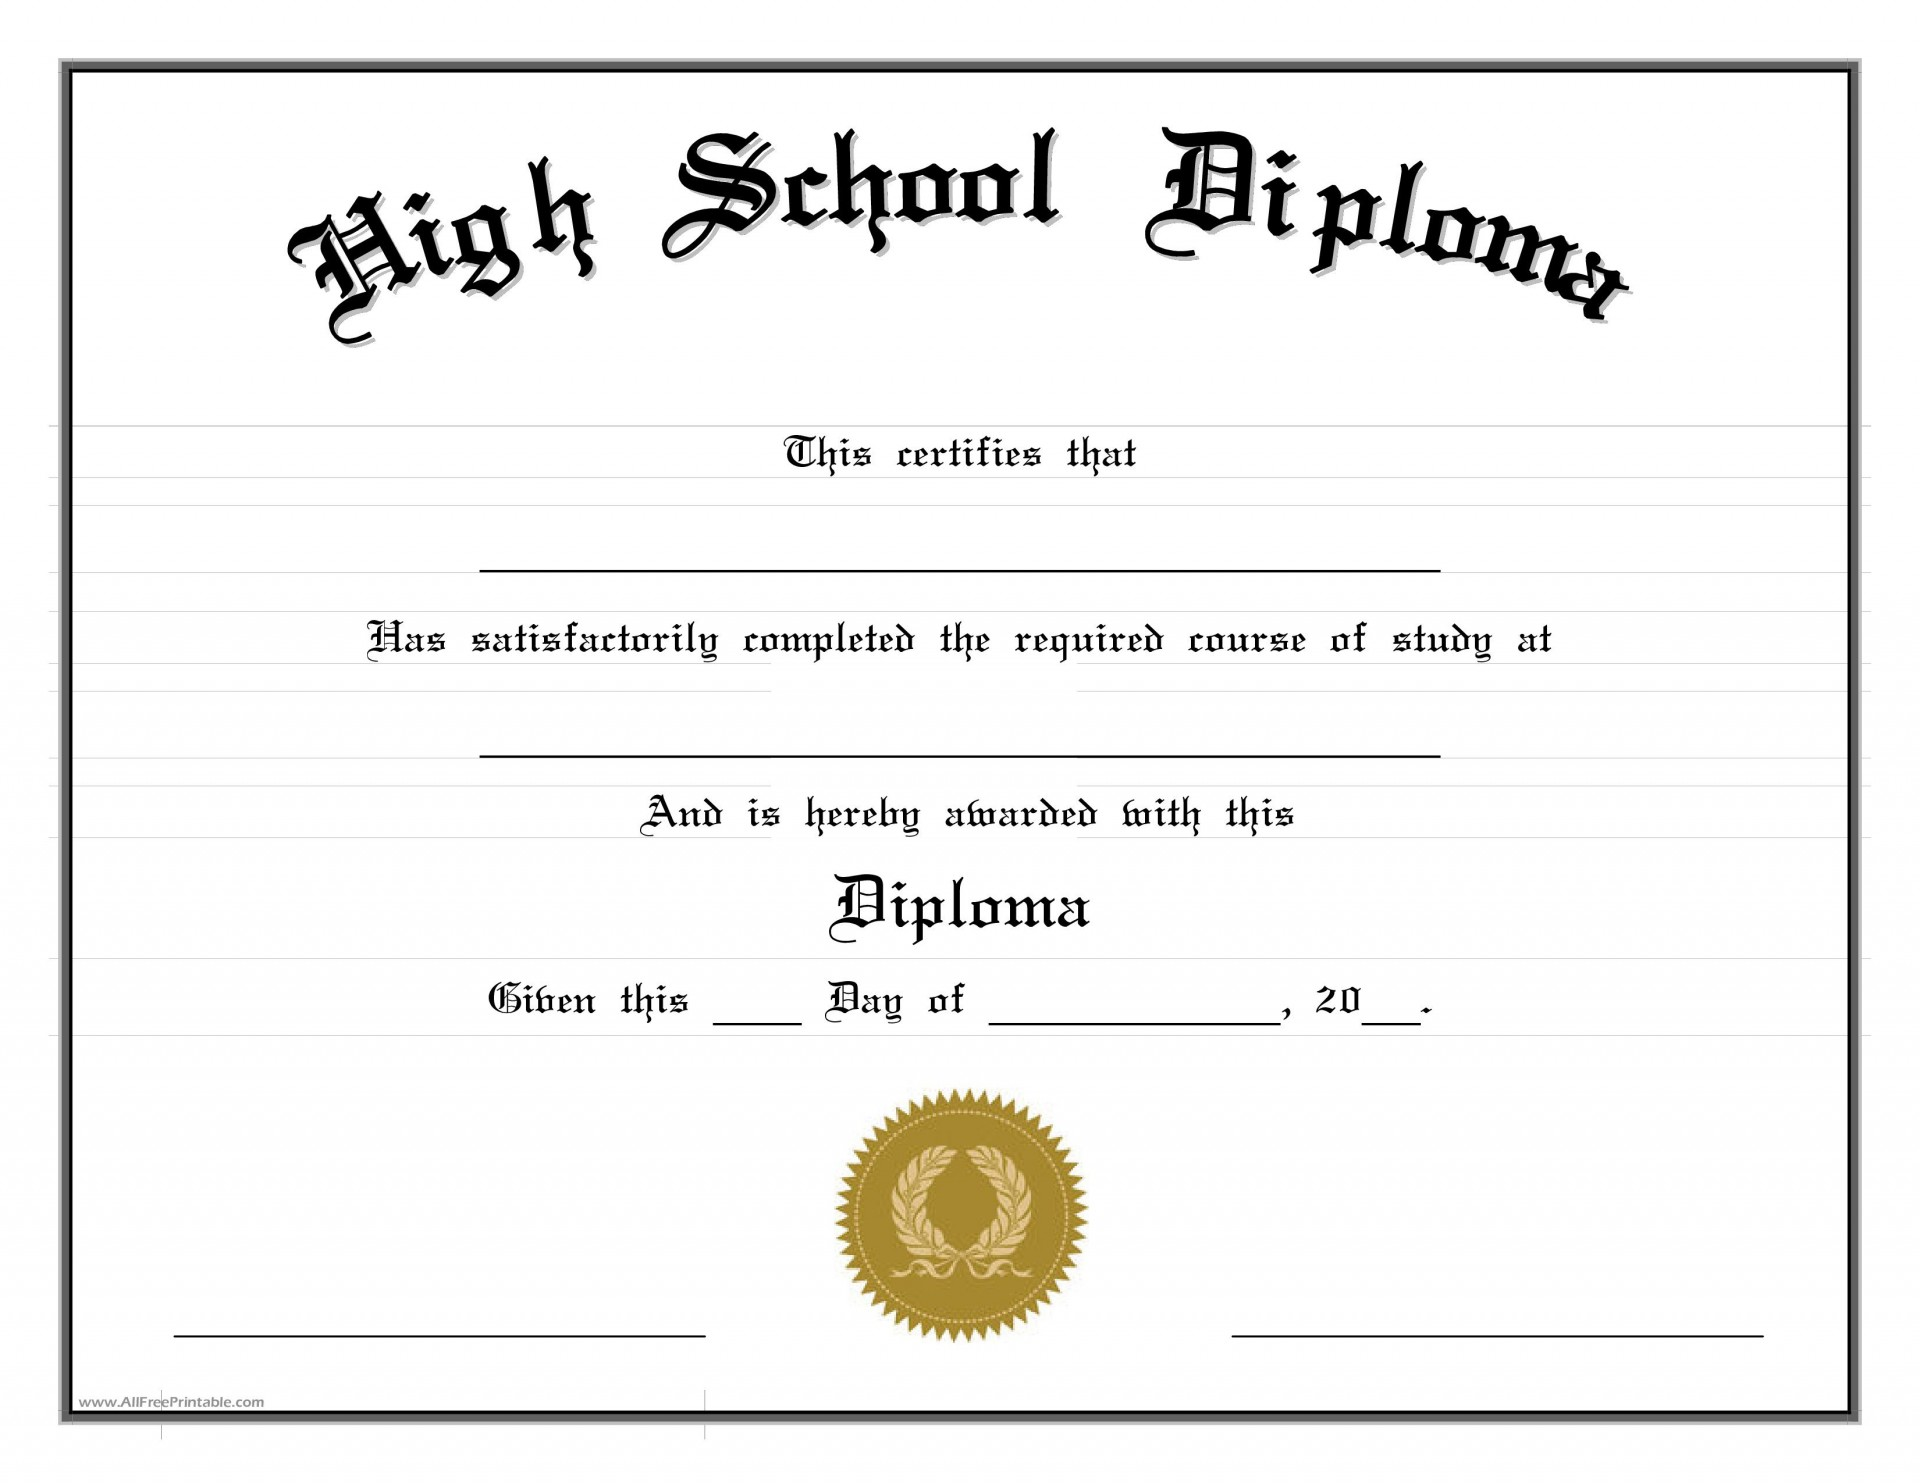 001 Fantastic High School Diploma Template Picture  With Seal Homeschool Free Printable Blank1920